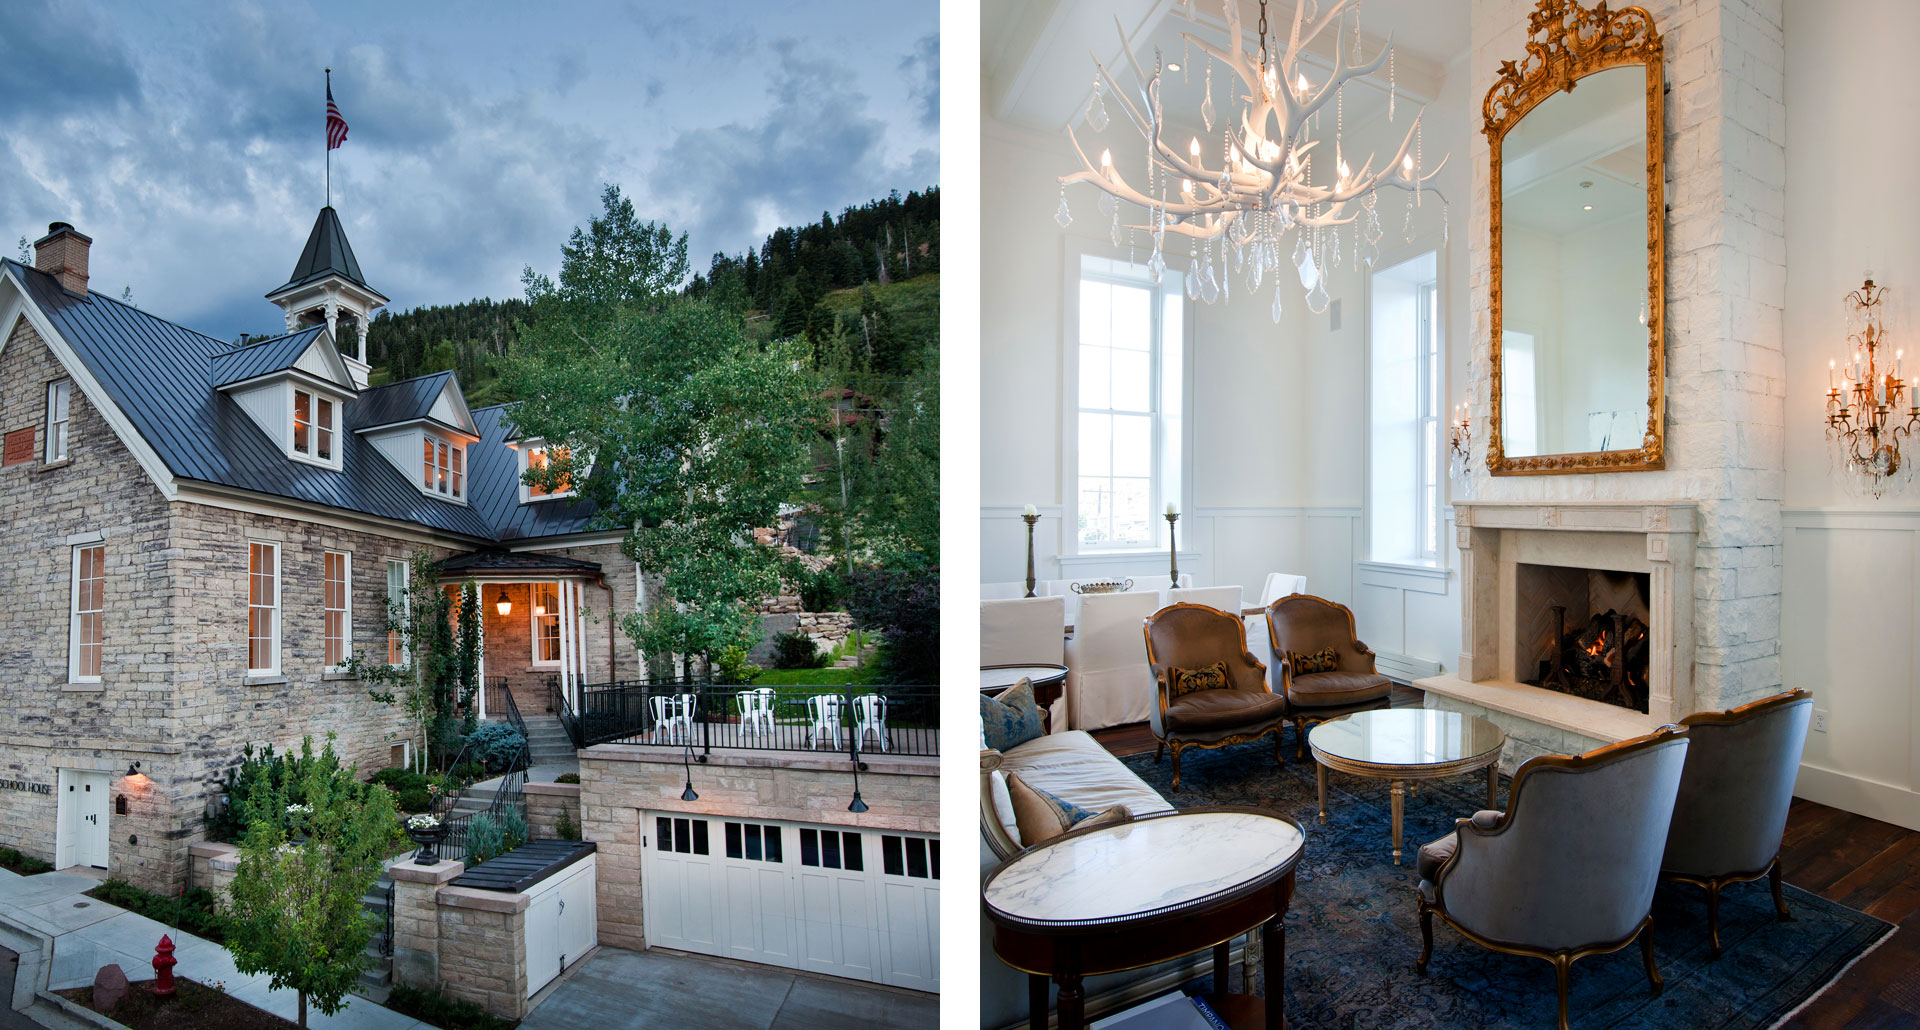 WASHINGTON SCHOOL HOUSE HOTEL - boutique hotel in Park City